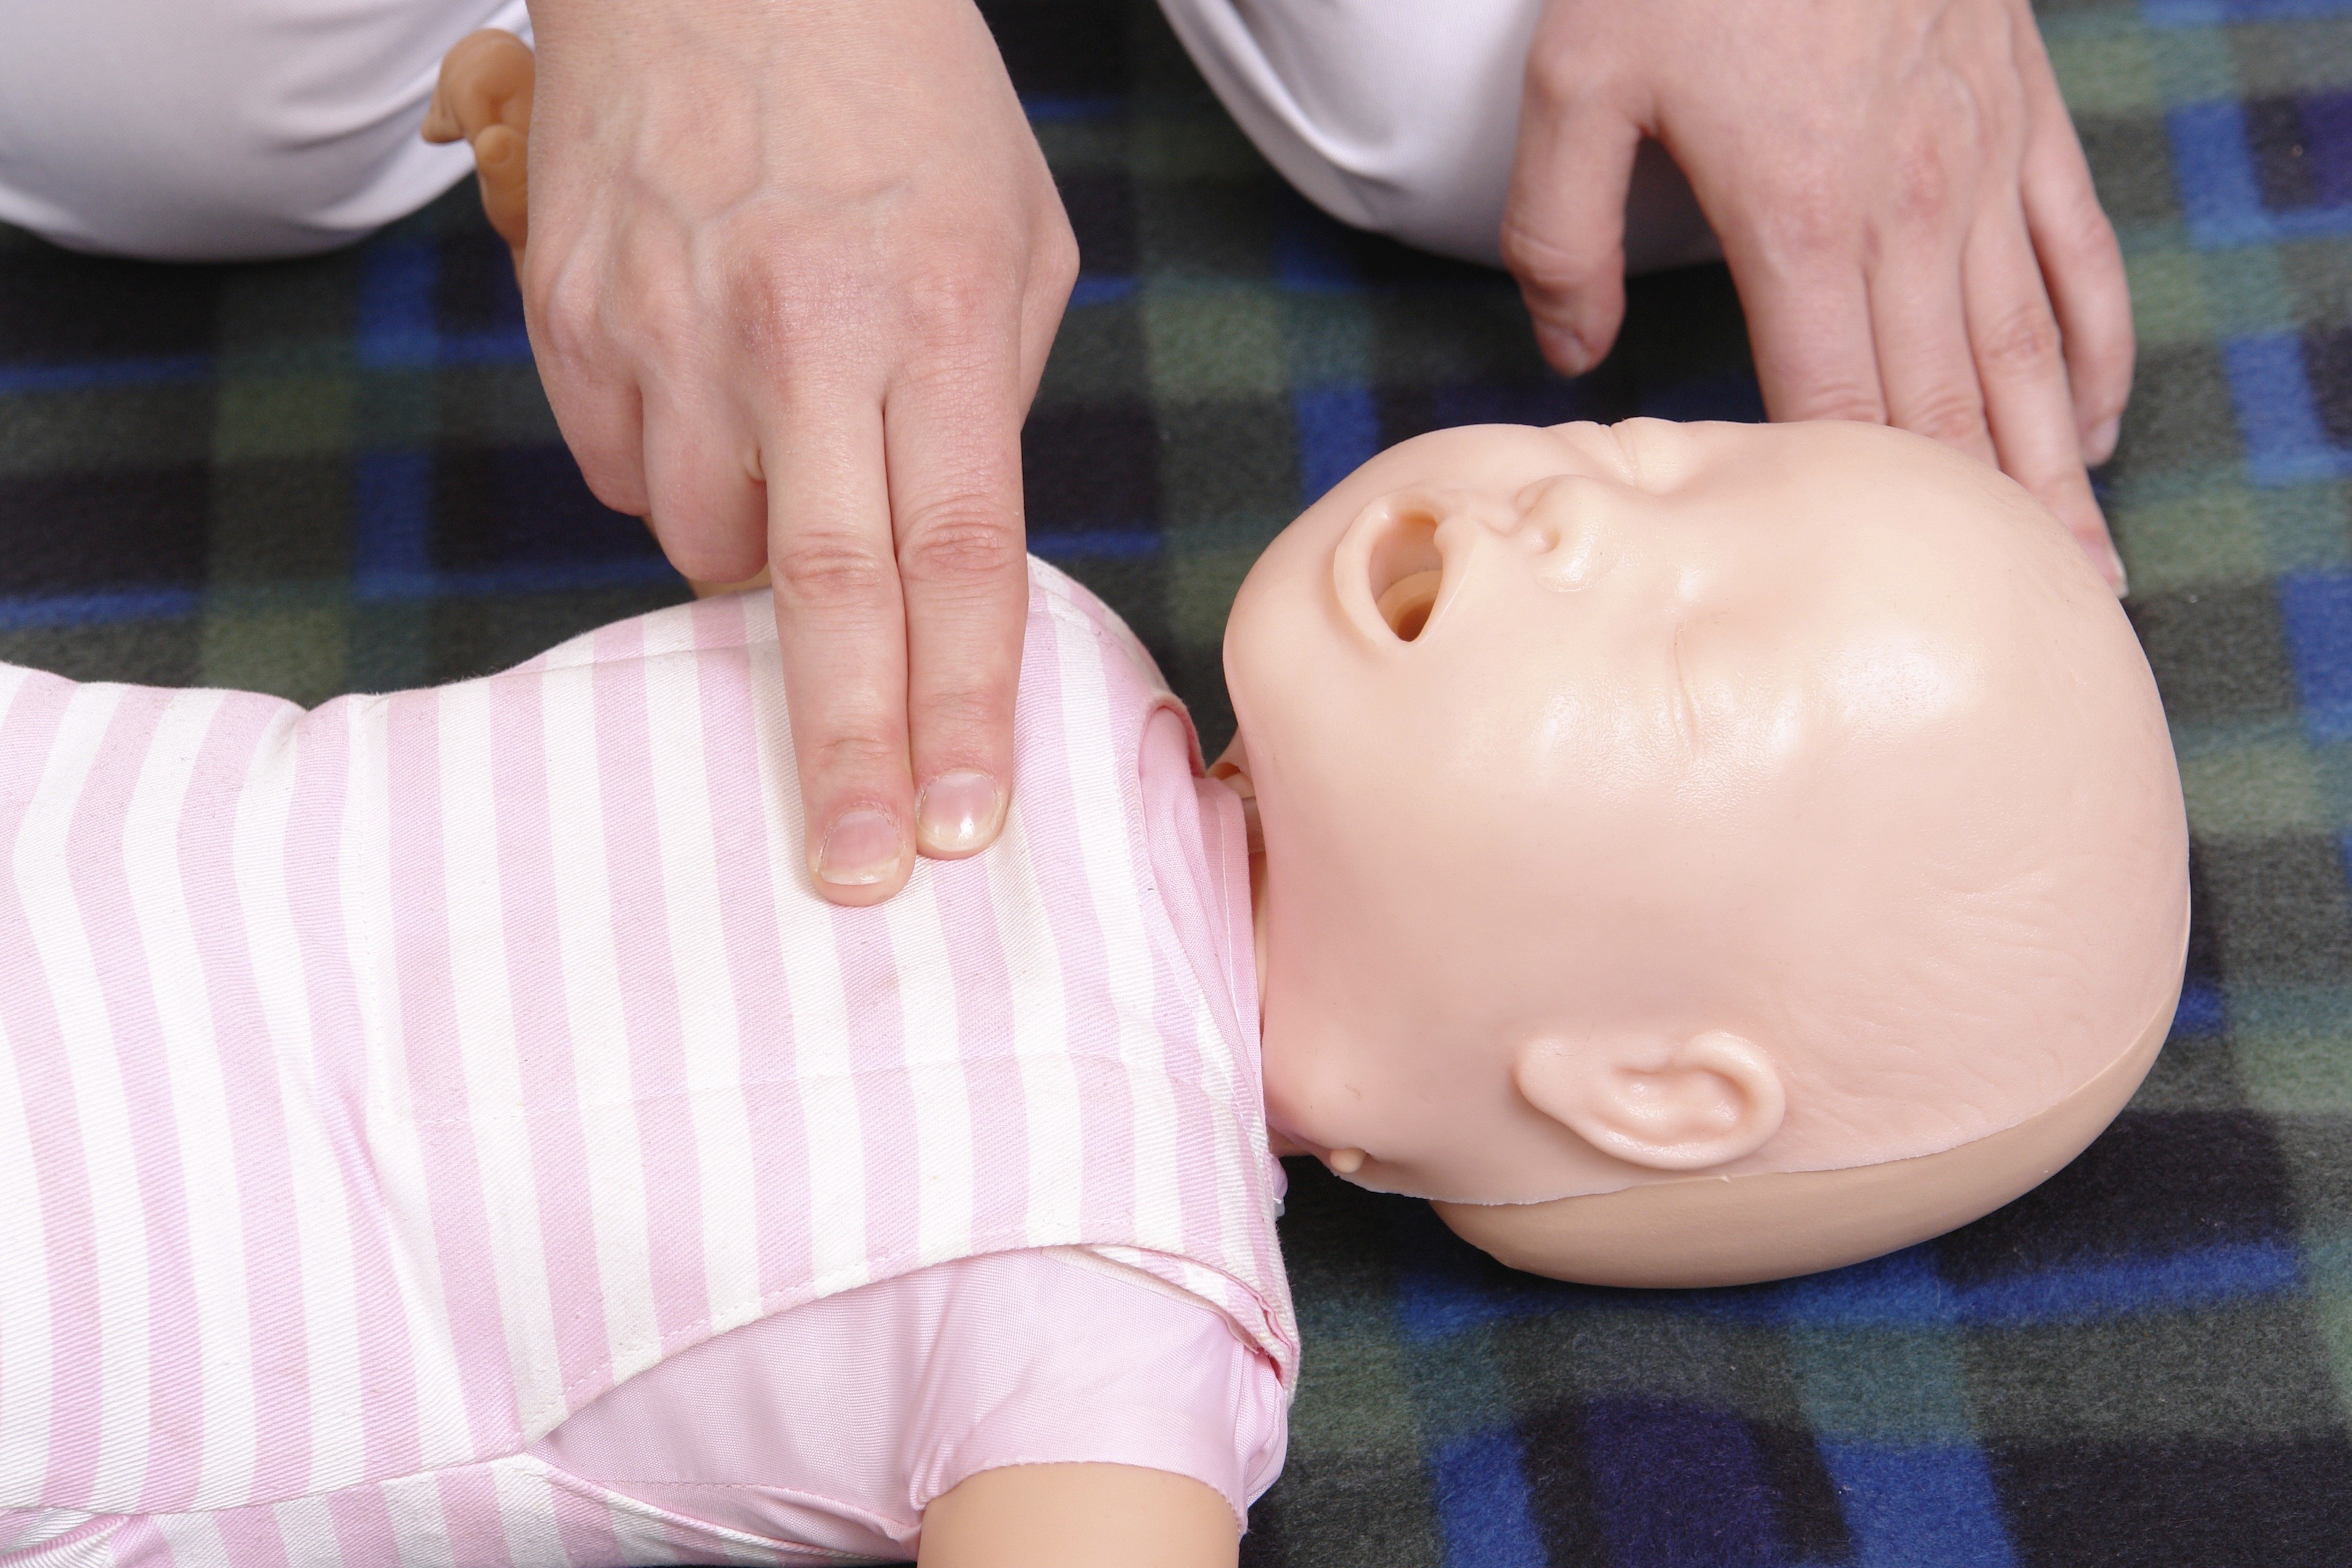 Bls study guide for american heart association classes berkeley infant and child bls cpr classes xflitez Choice Image